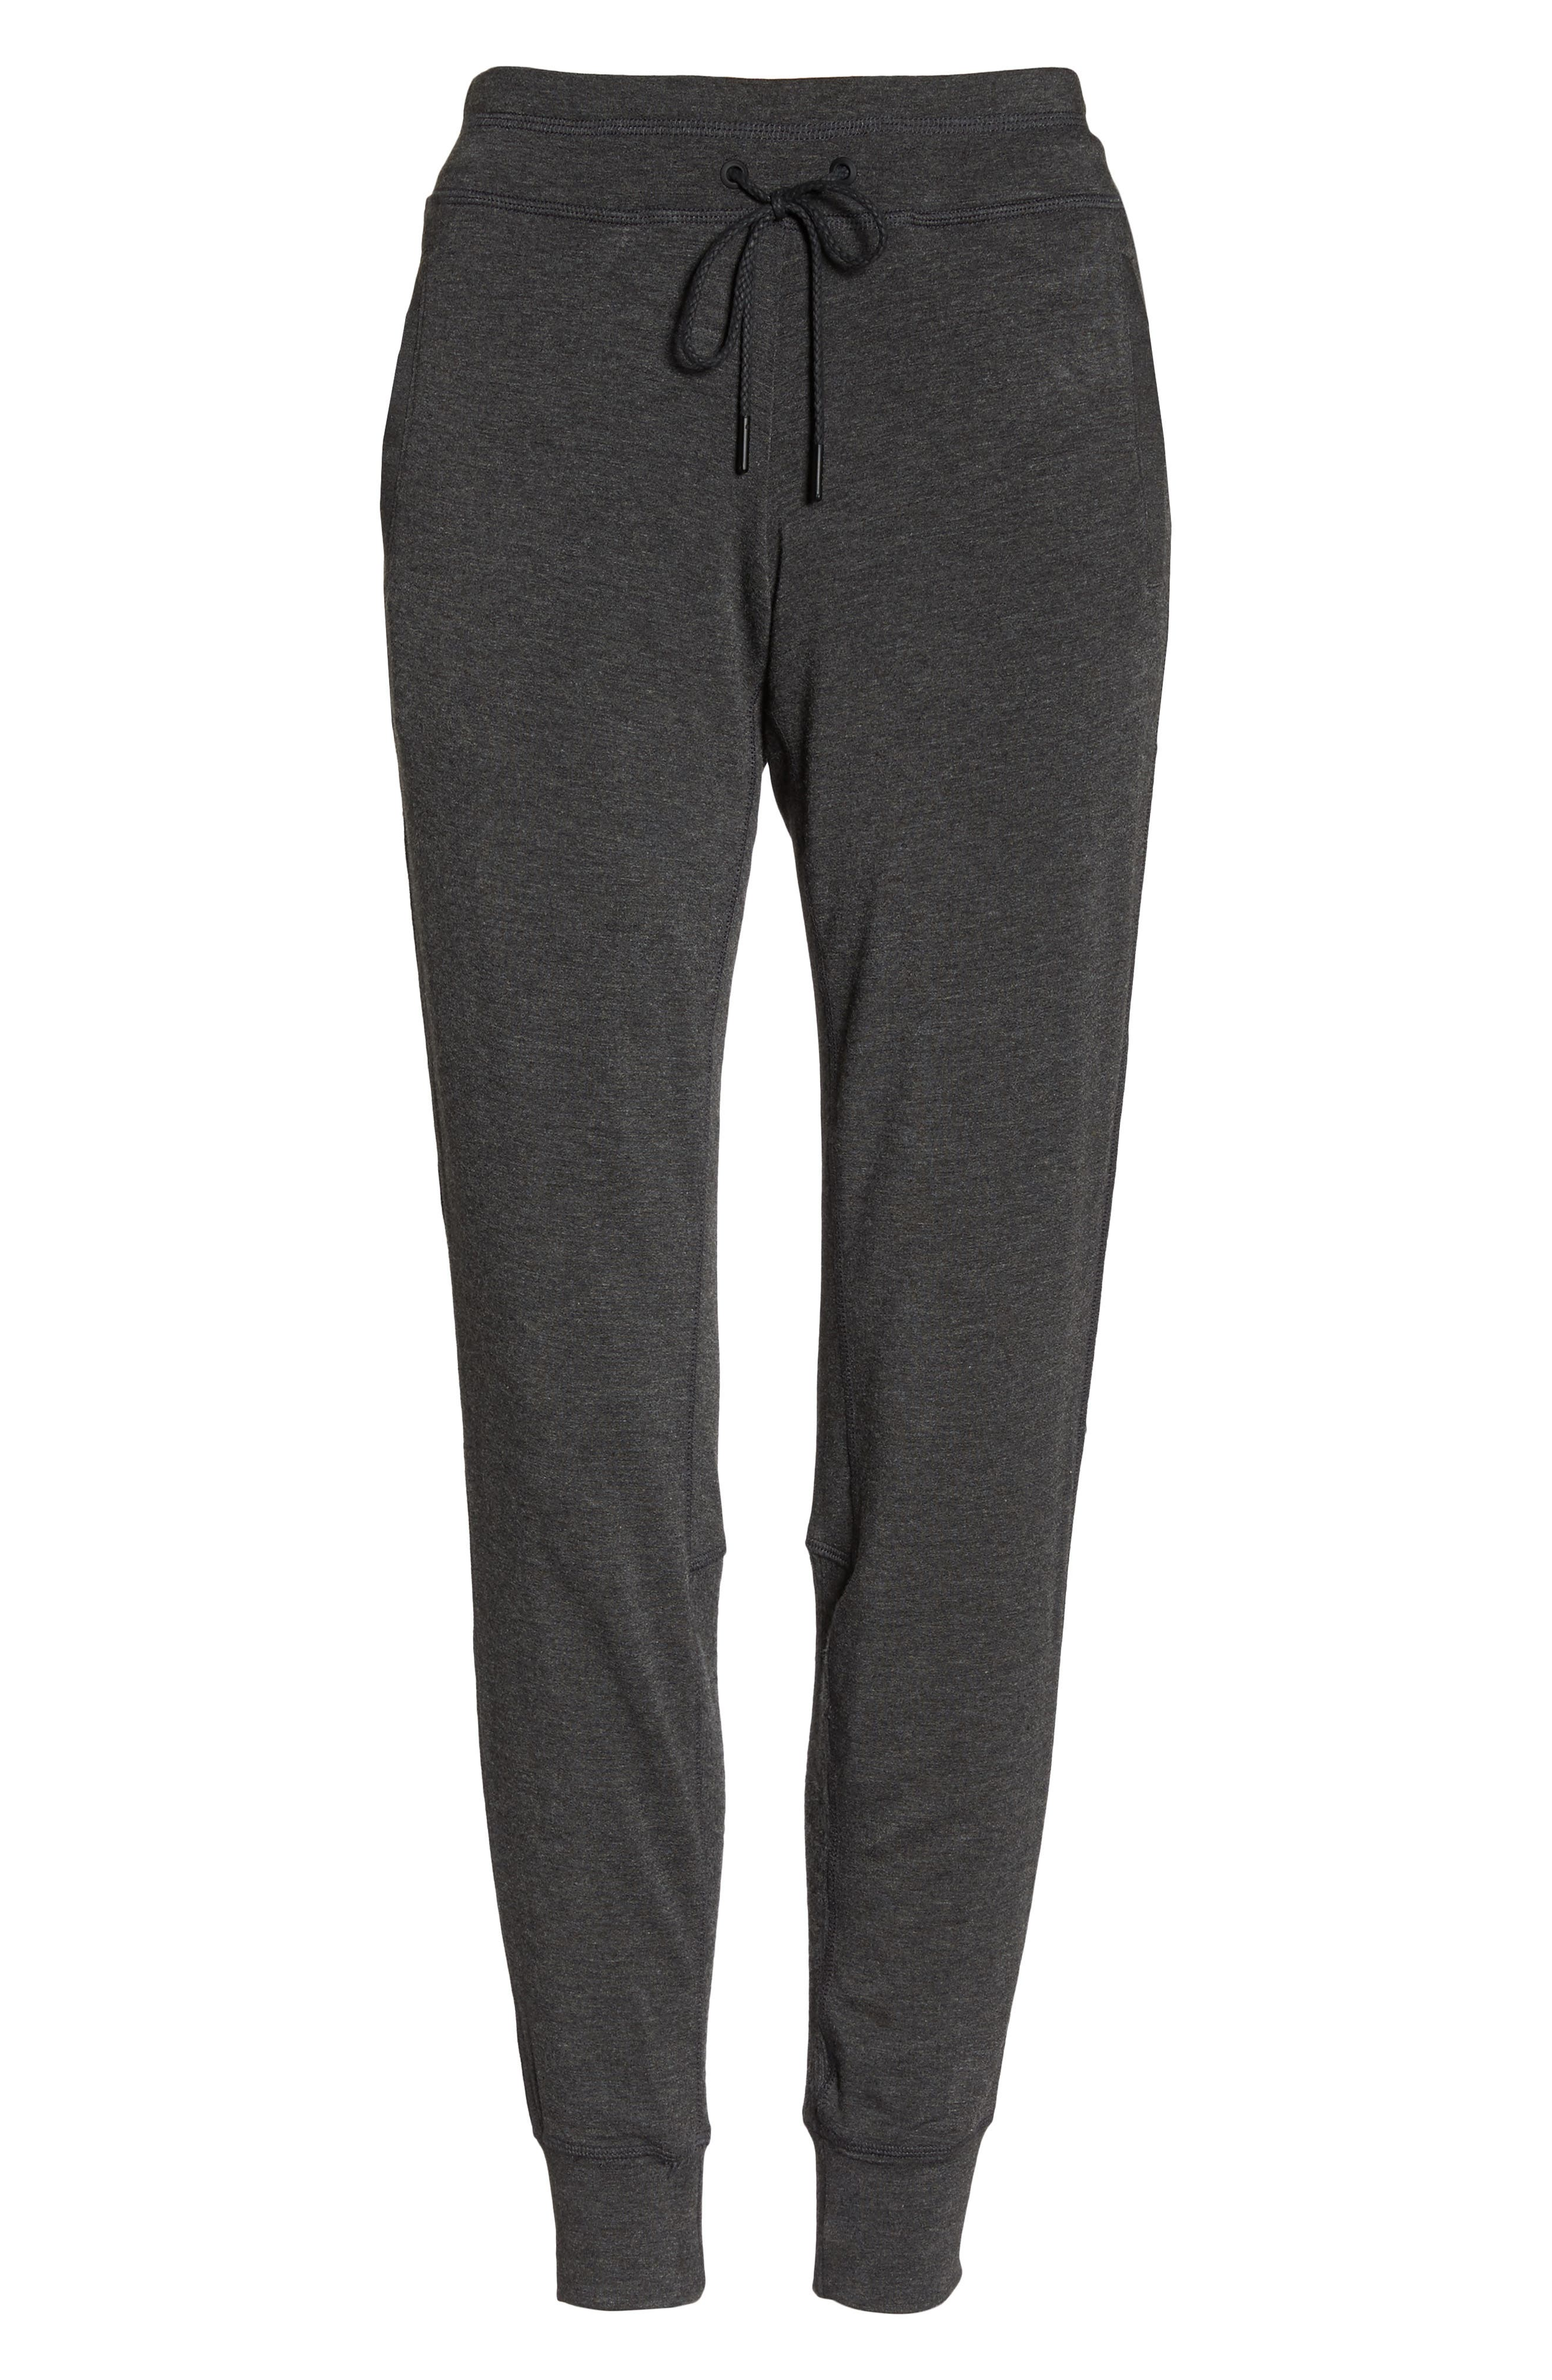 Crane Sweatpants,                             Alternate thumbnail 7, color,                             020